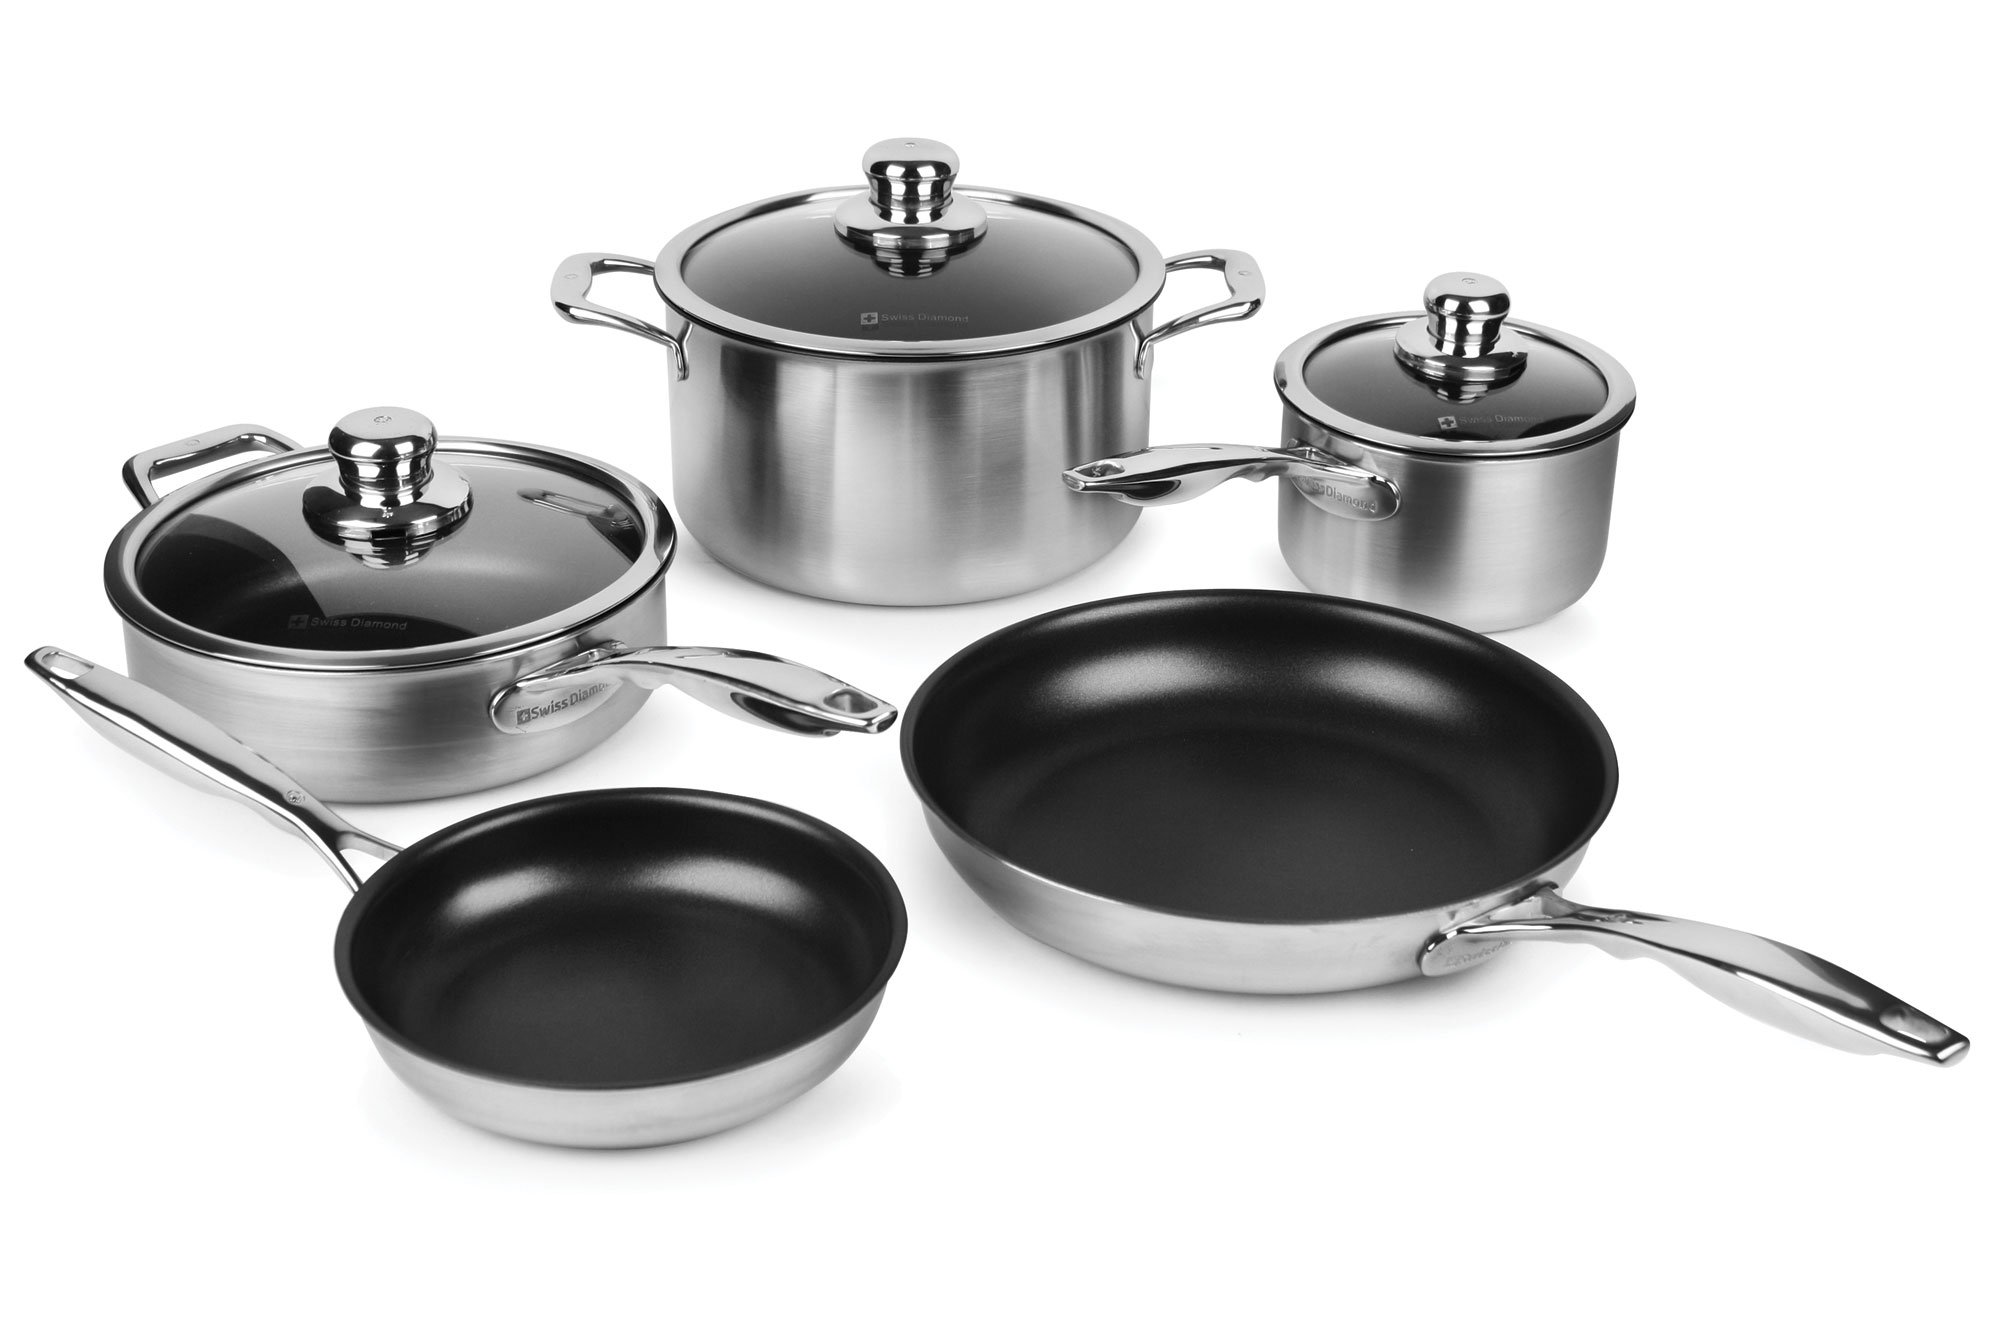 Swiss Diamond Prestige Clad Stainless Steel Nonstick